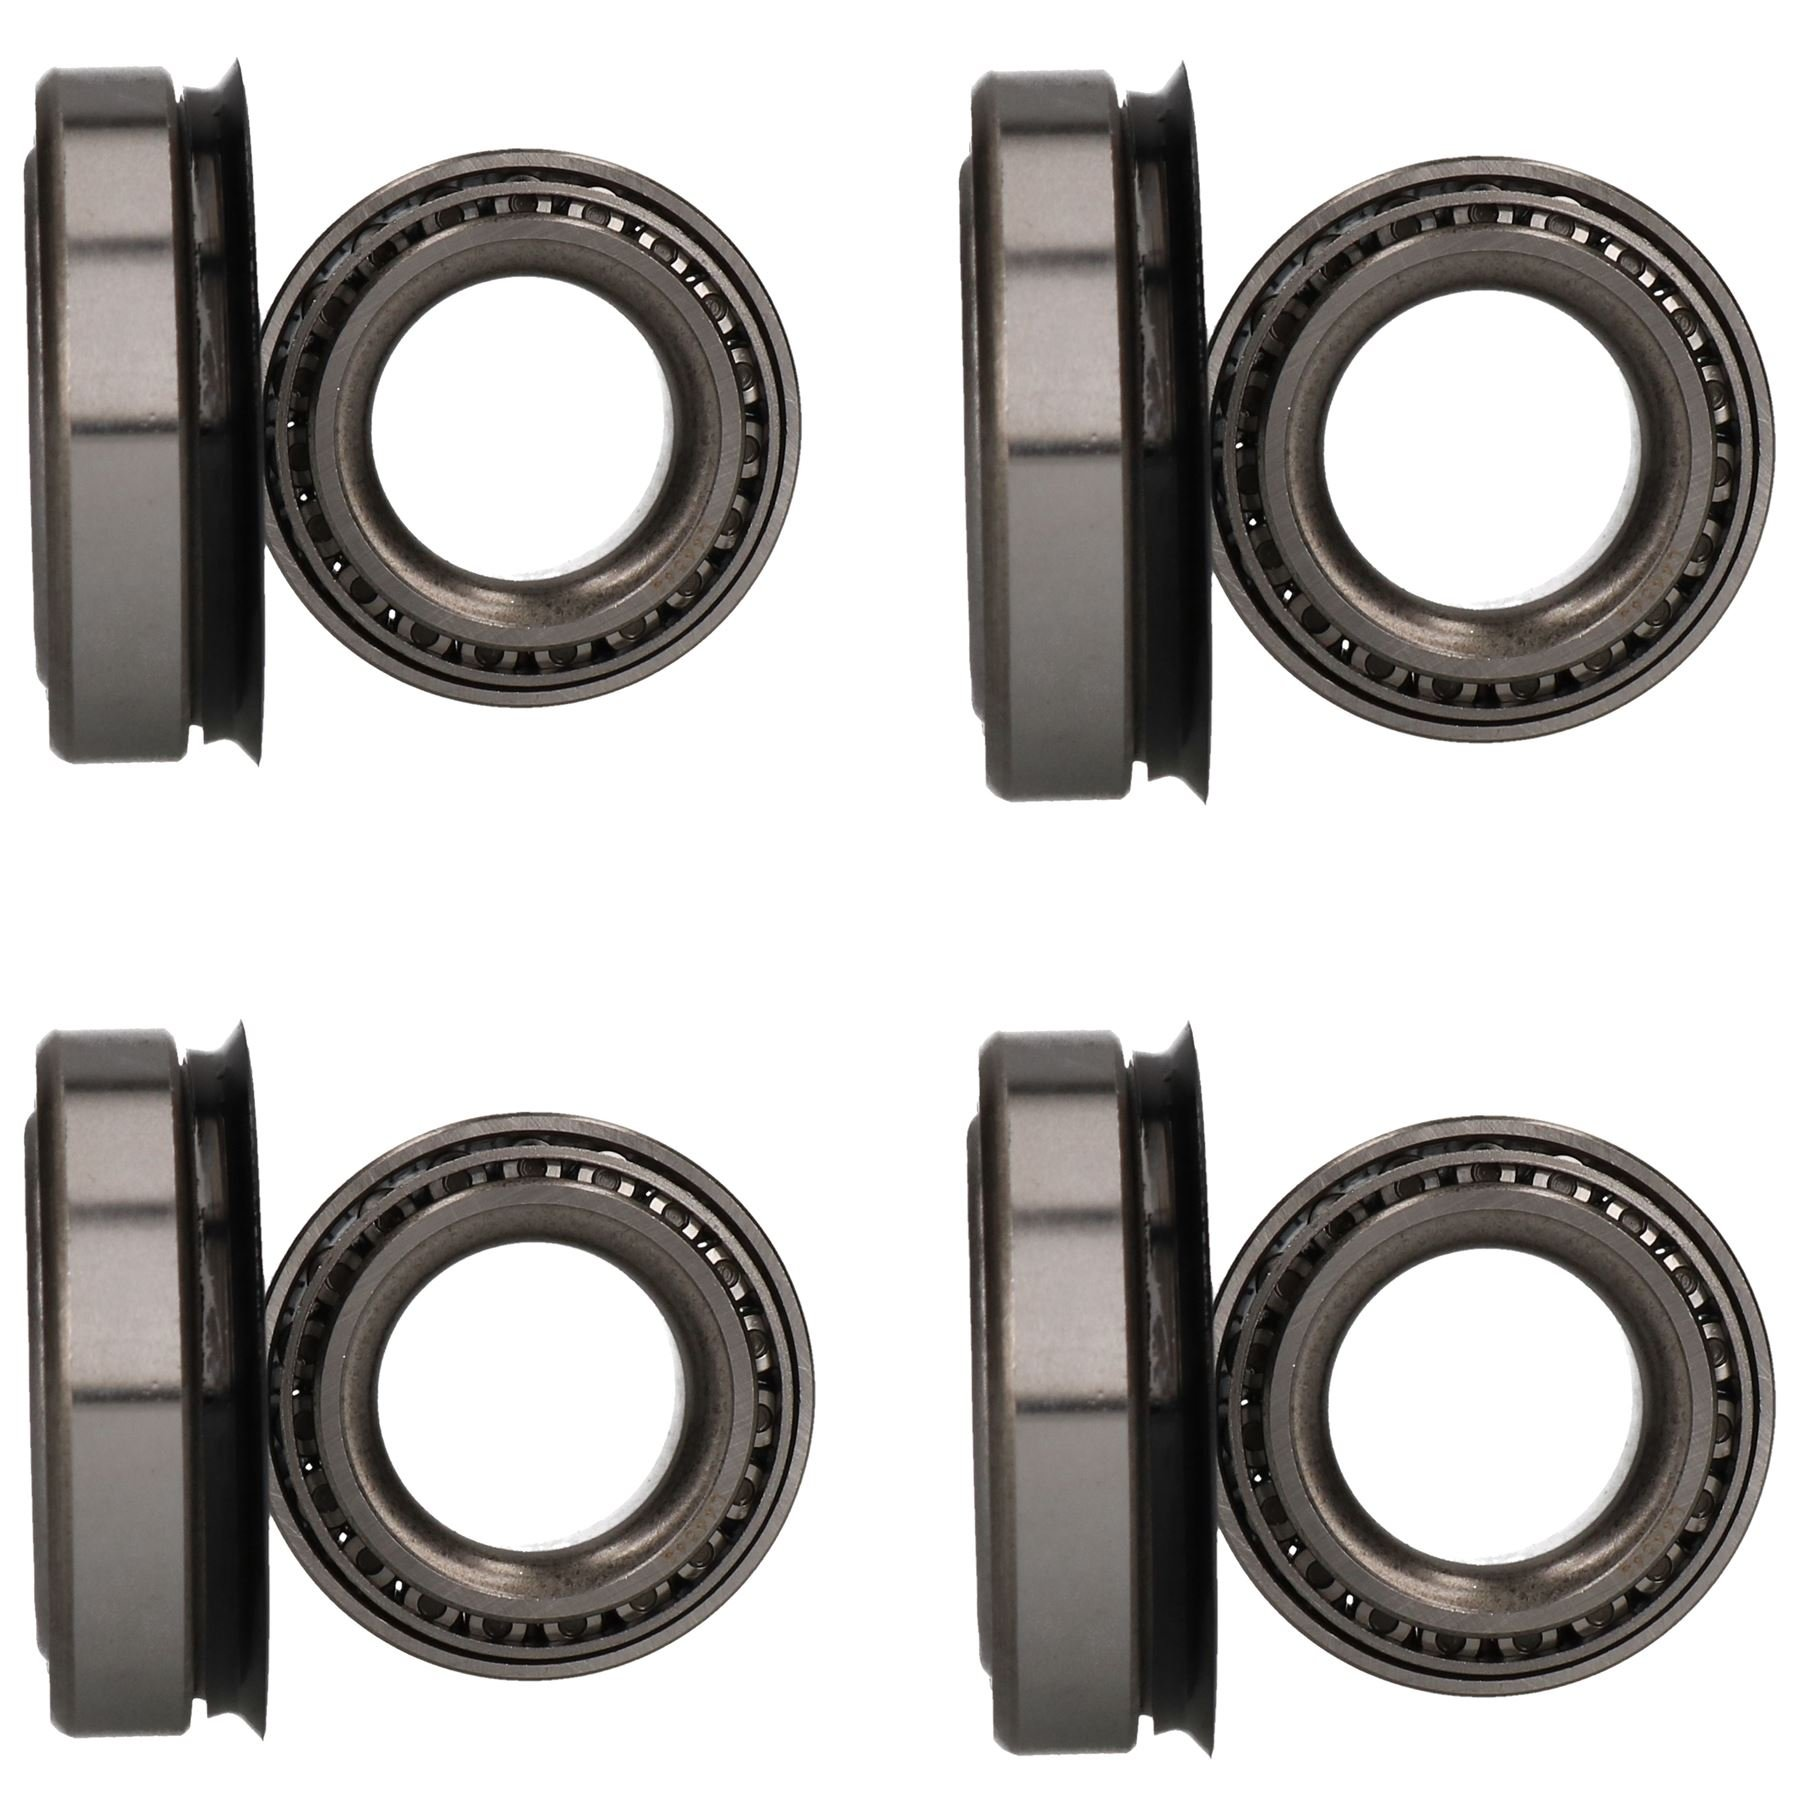 AB Tools 4 Trailer Bearing Kit for Indespension 200 203mm Drum 7848 44649/10 67048L/10 by AB Tools